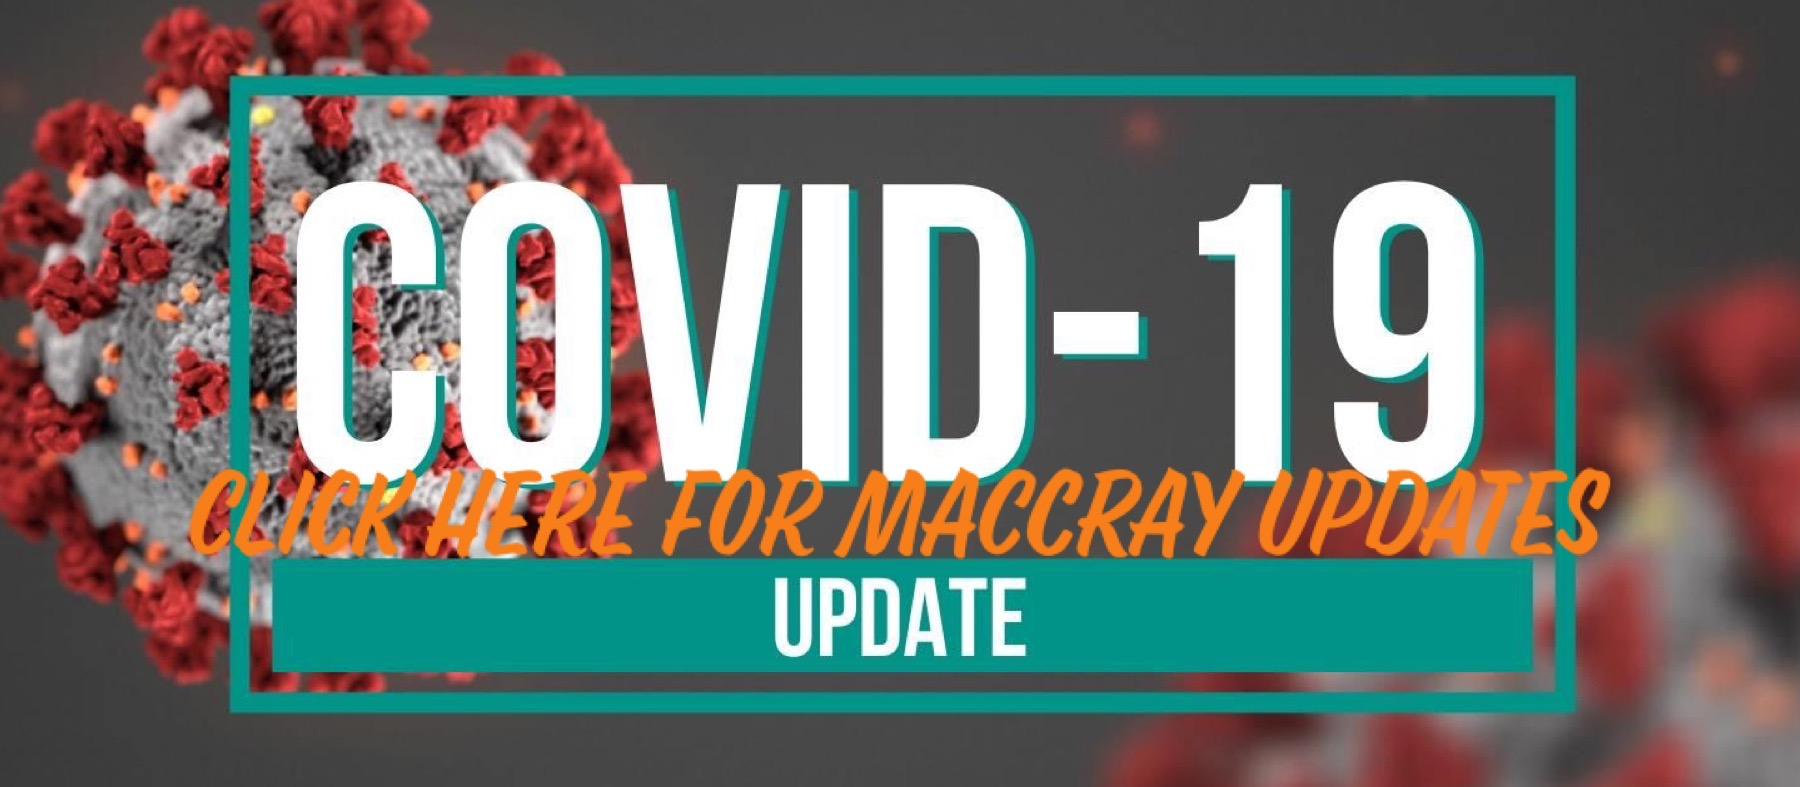 MACCRAY COVID-19 Information